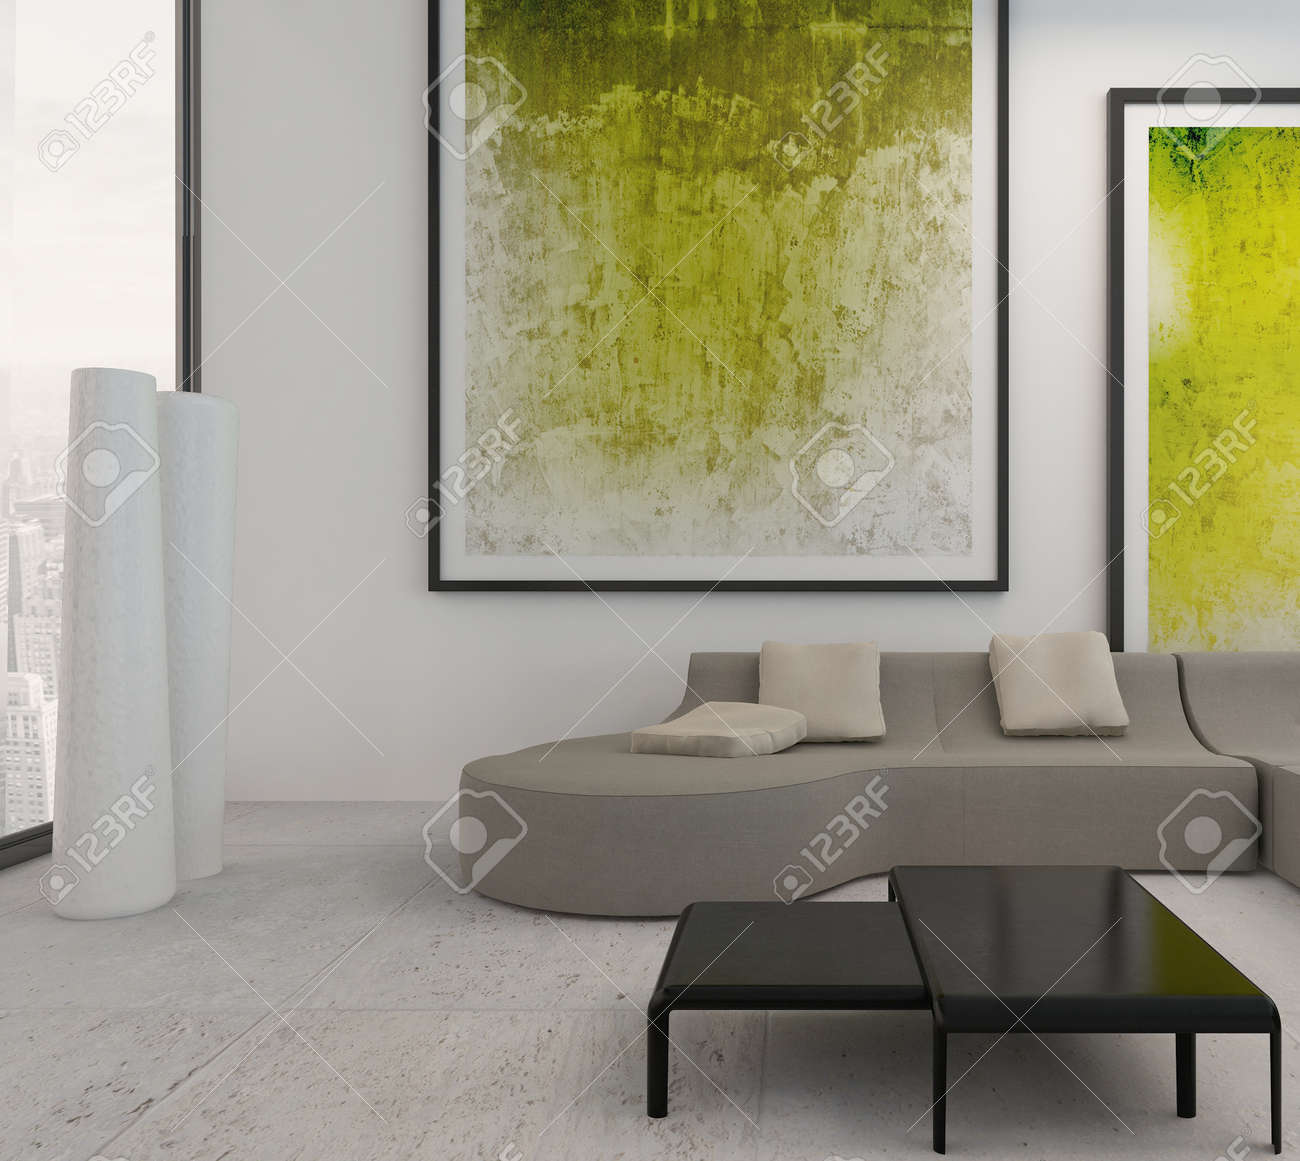 Paintings For The Living Room Modern Living Room Interior With Green Paintings On Wall Stock